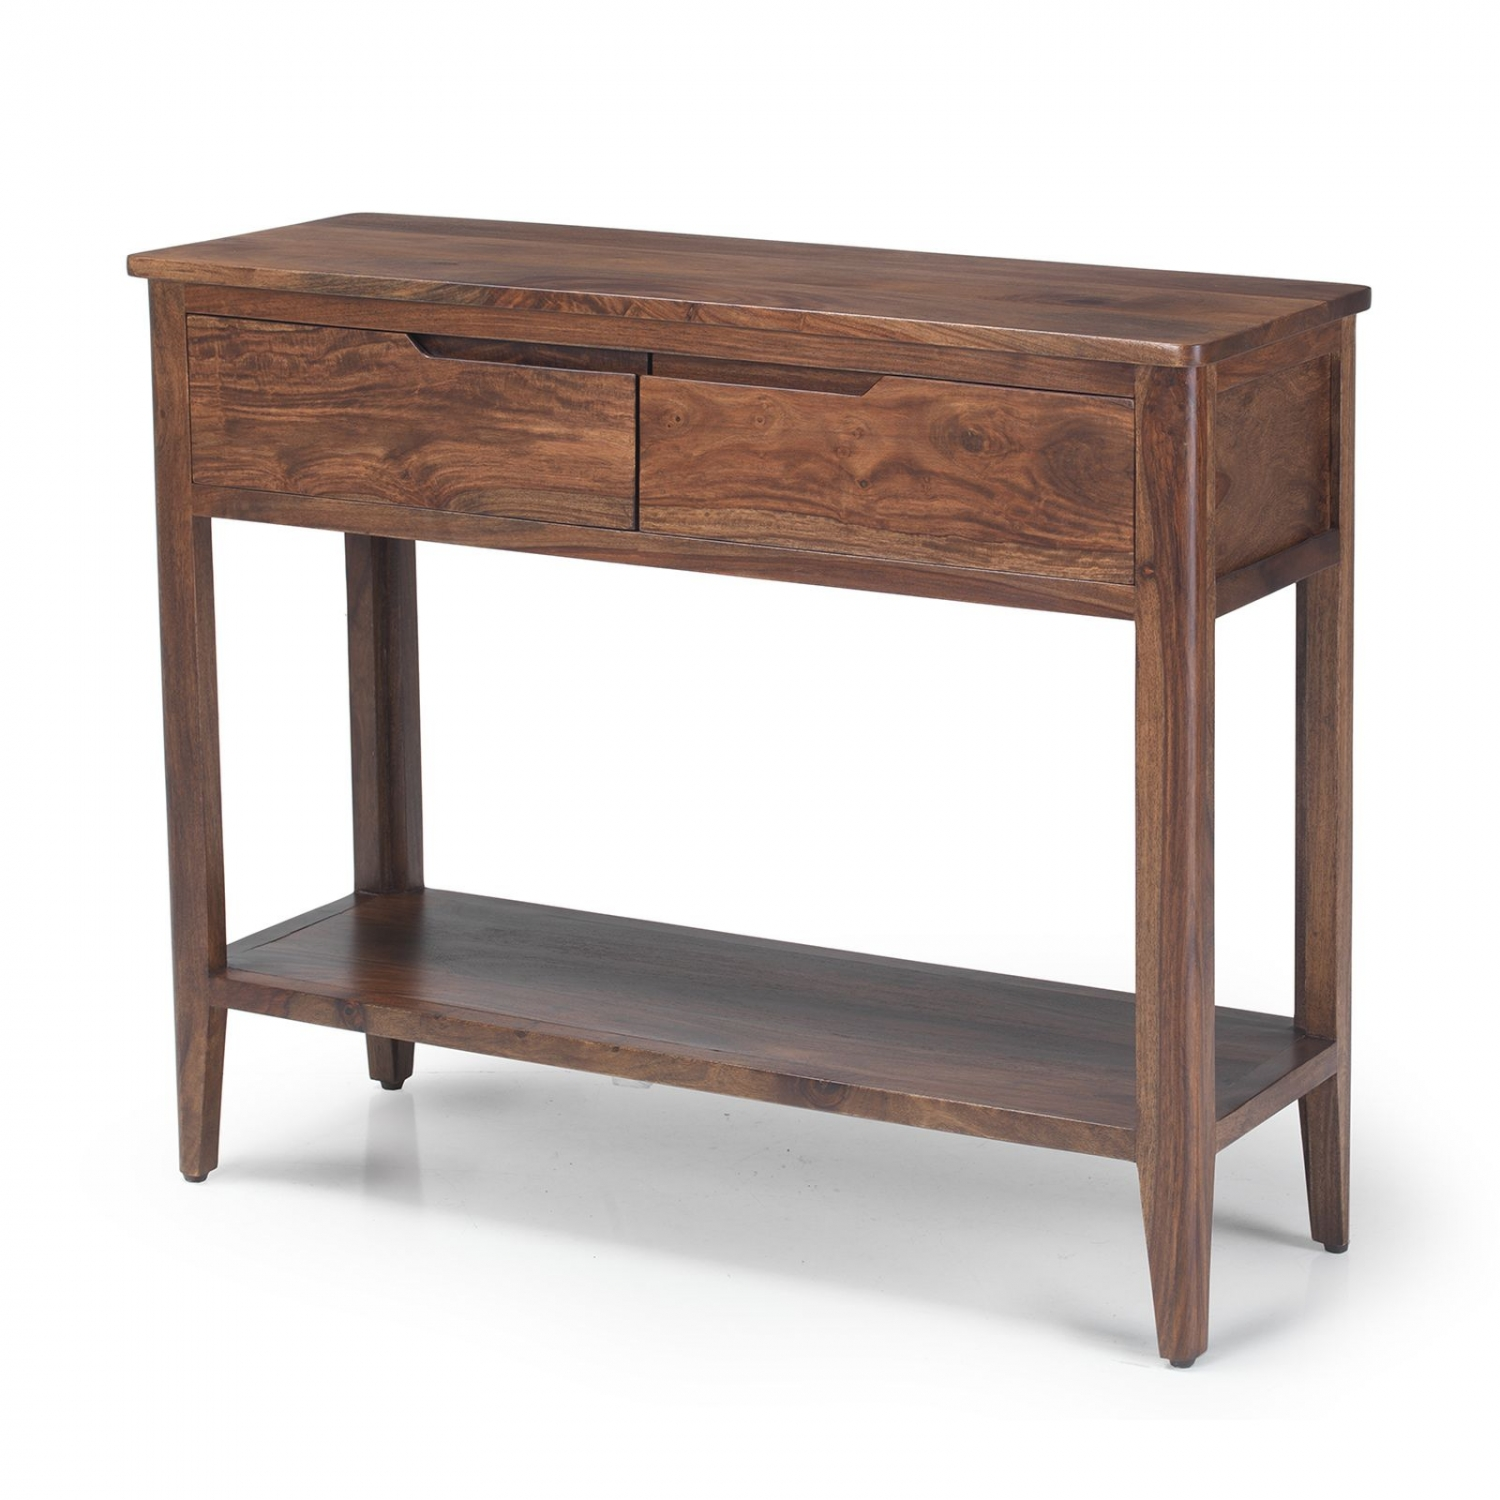 Walnut Wood Furniture ~ Padstow walnut dark wood furniture console hall table with